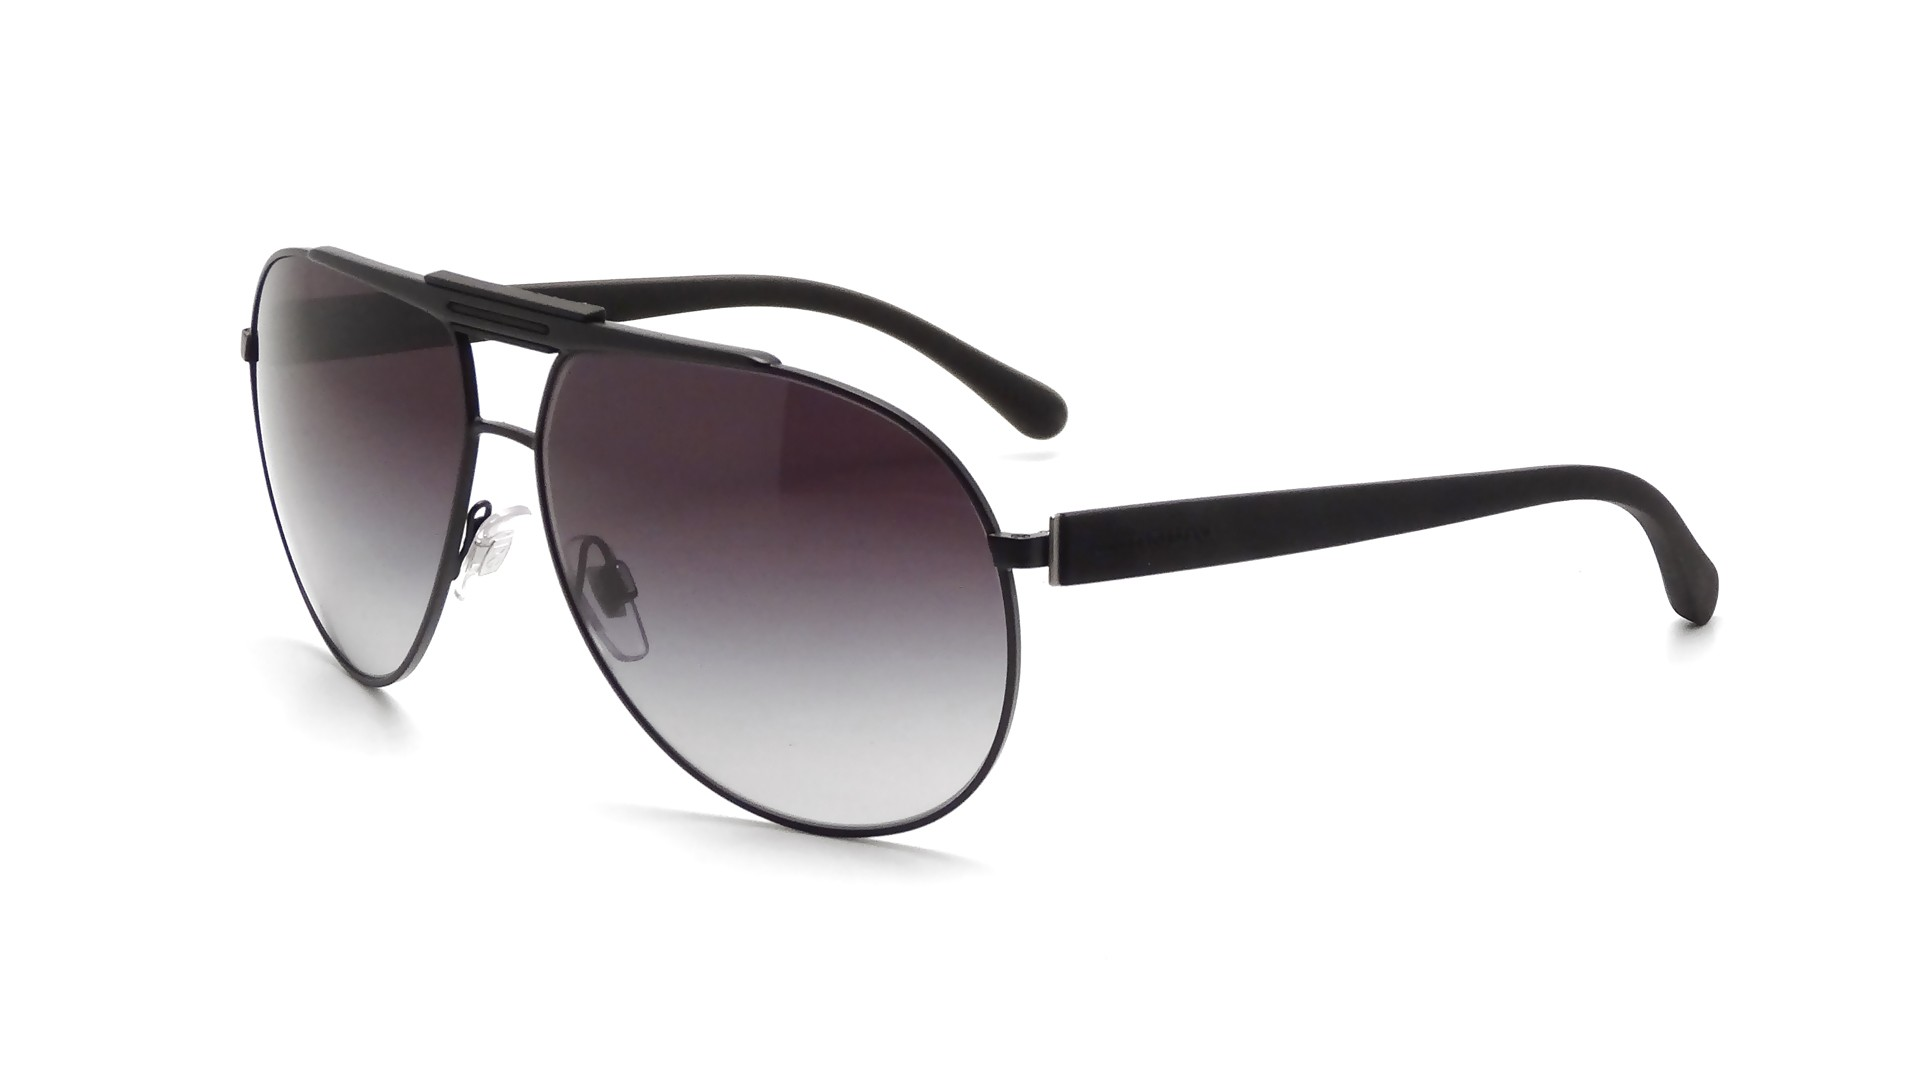 dolce sunglasses  dolce sunglasses